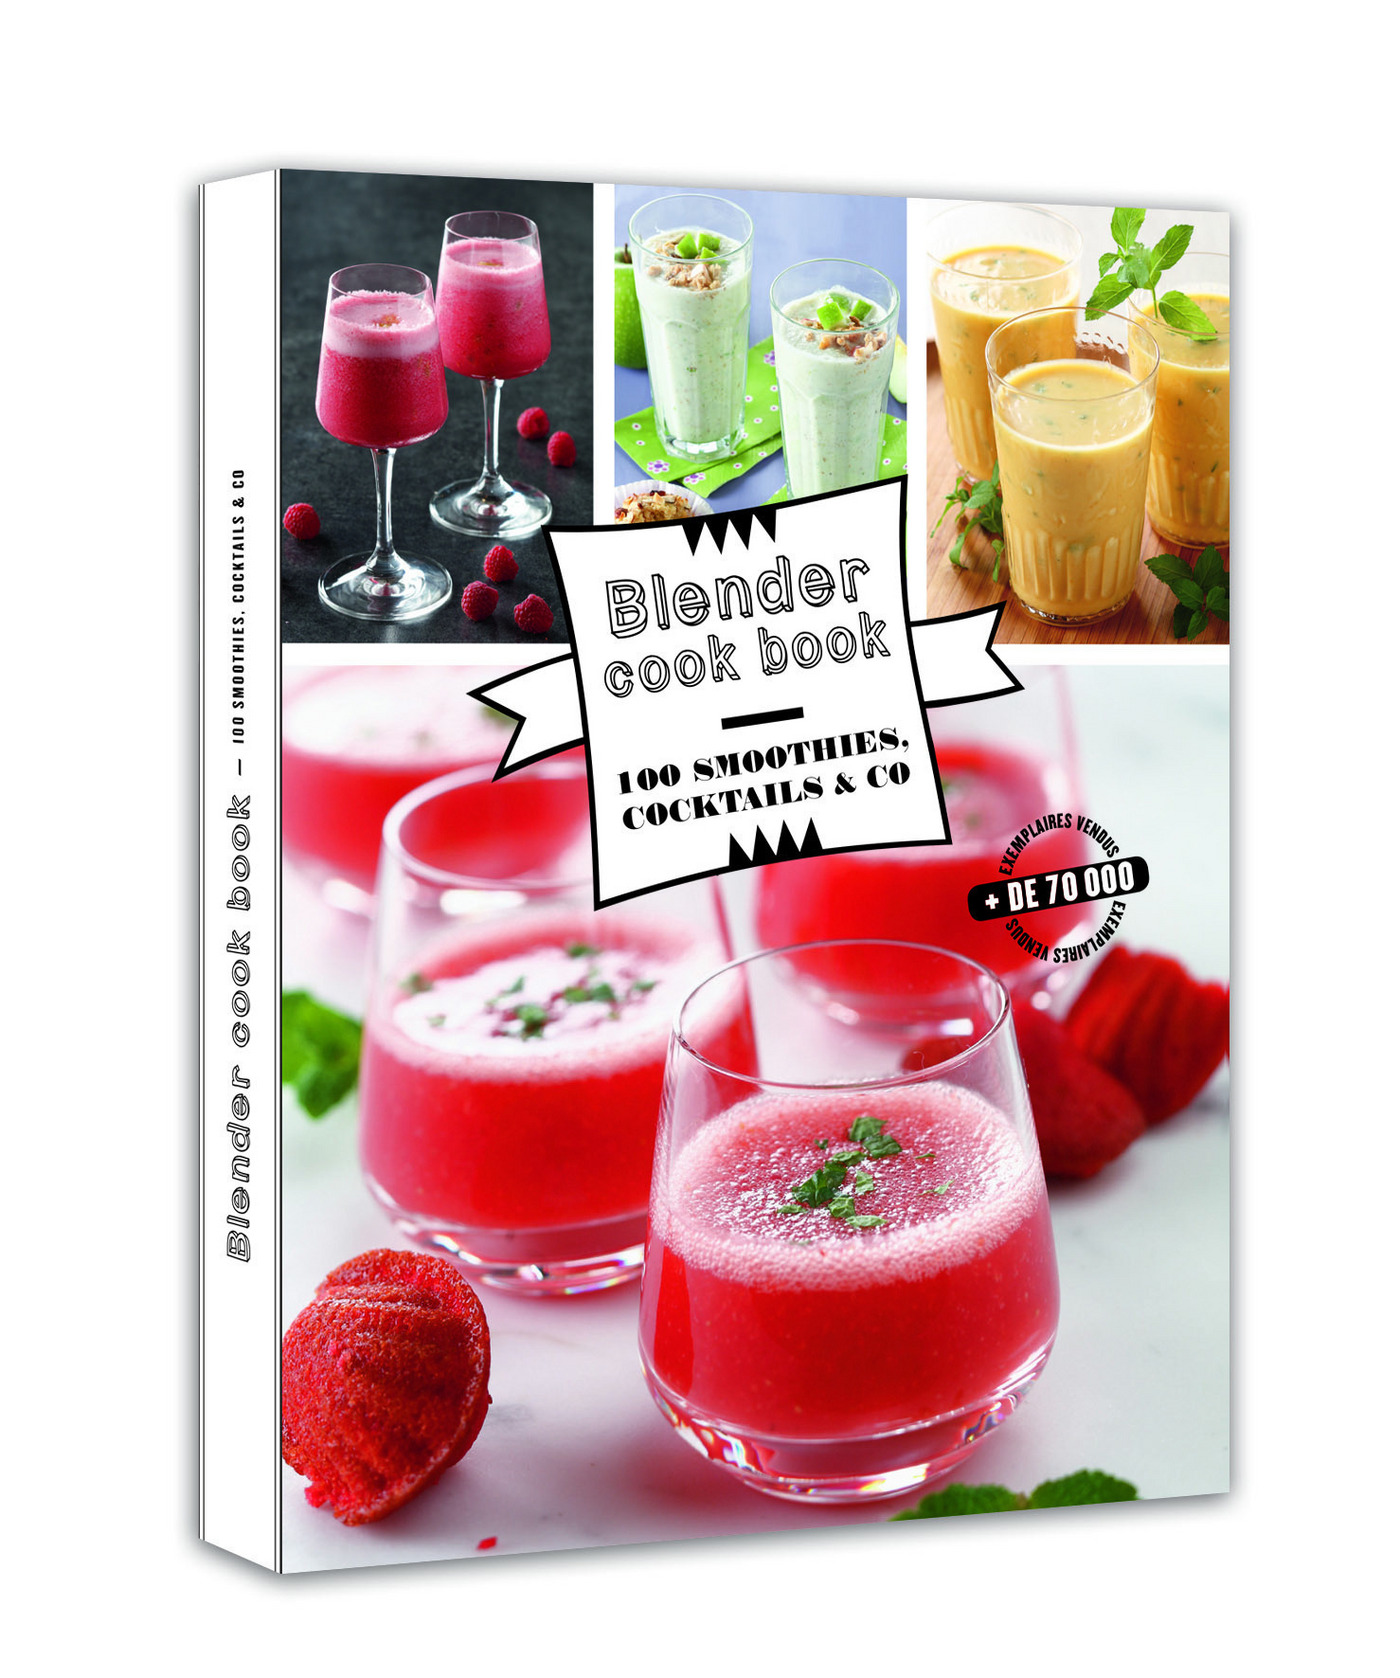 Blender cook book 100 smoothies, cocktails &co